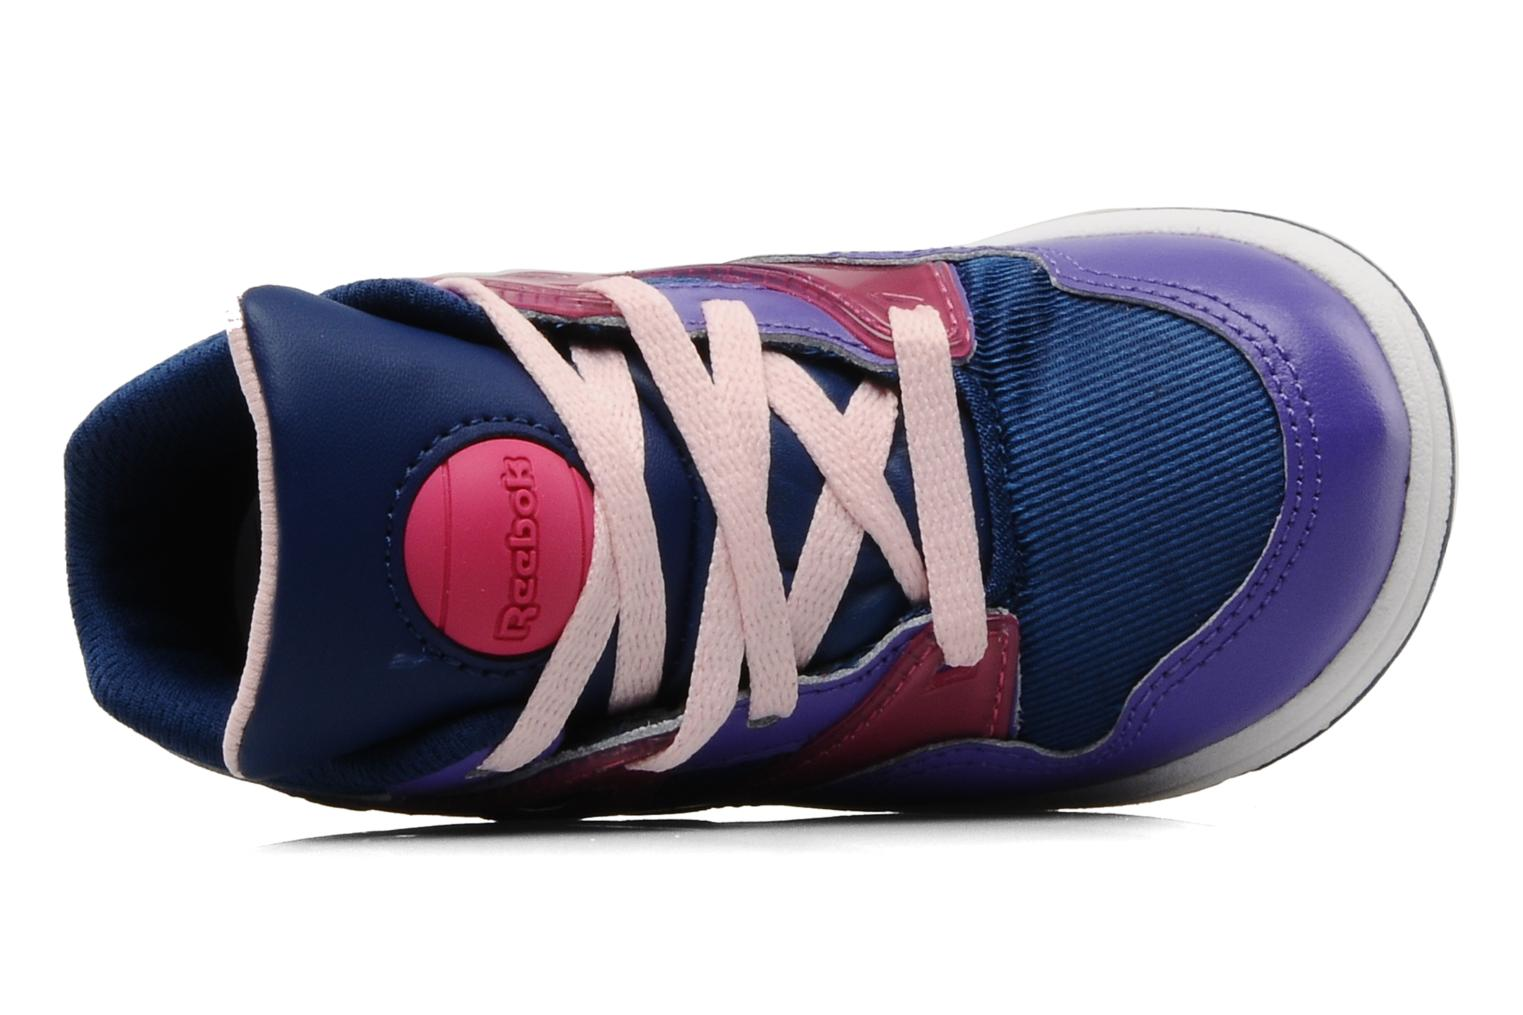 Trainers Reebok Versa Pump Omni Lite Multicolor view from the left